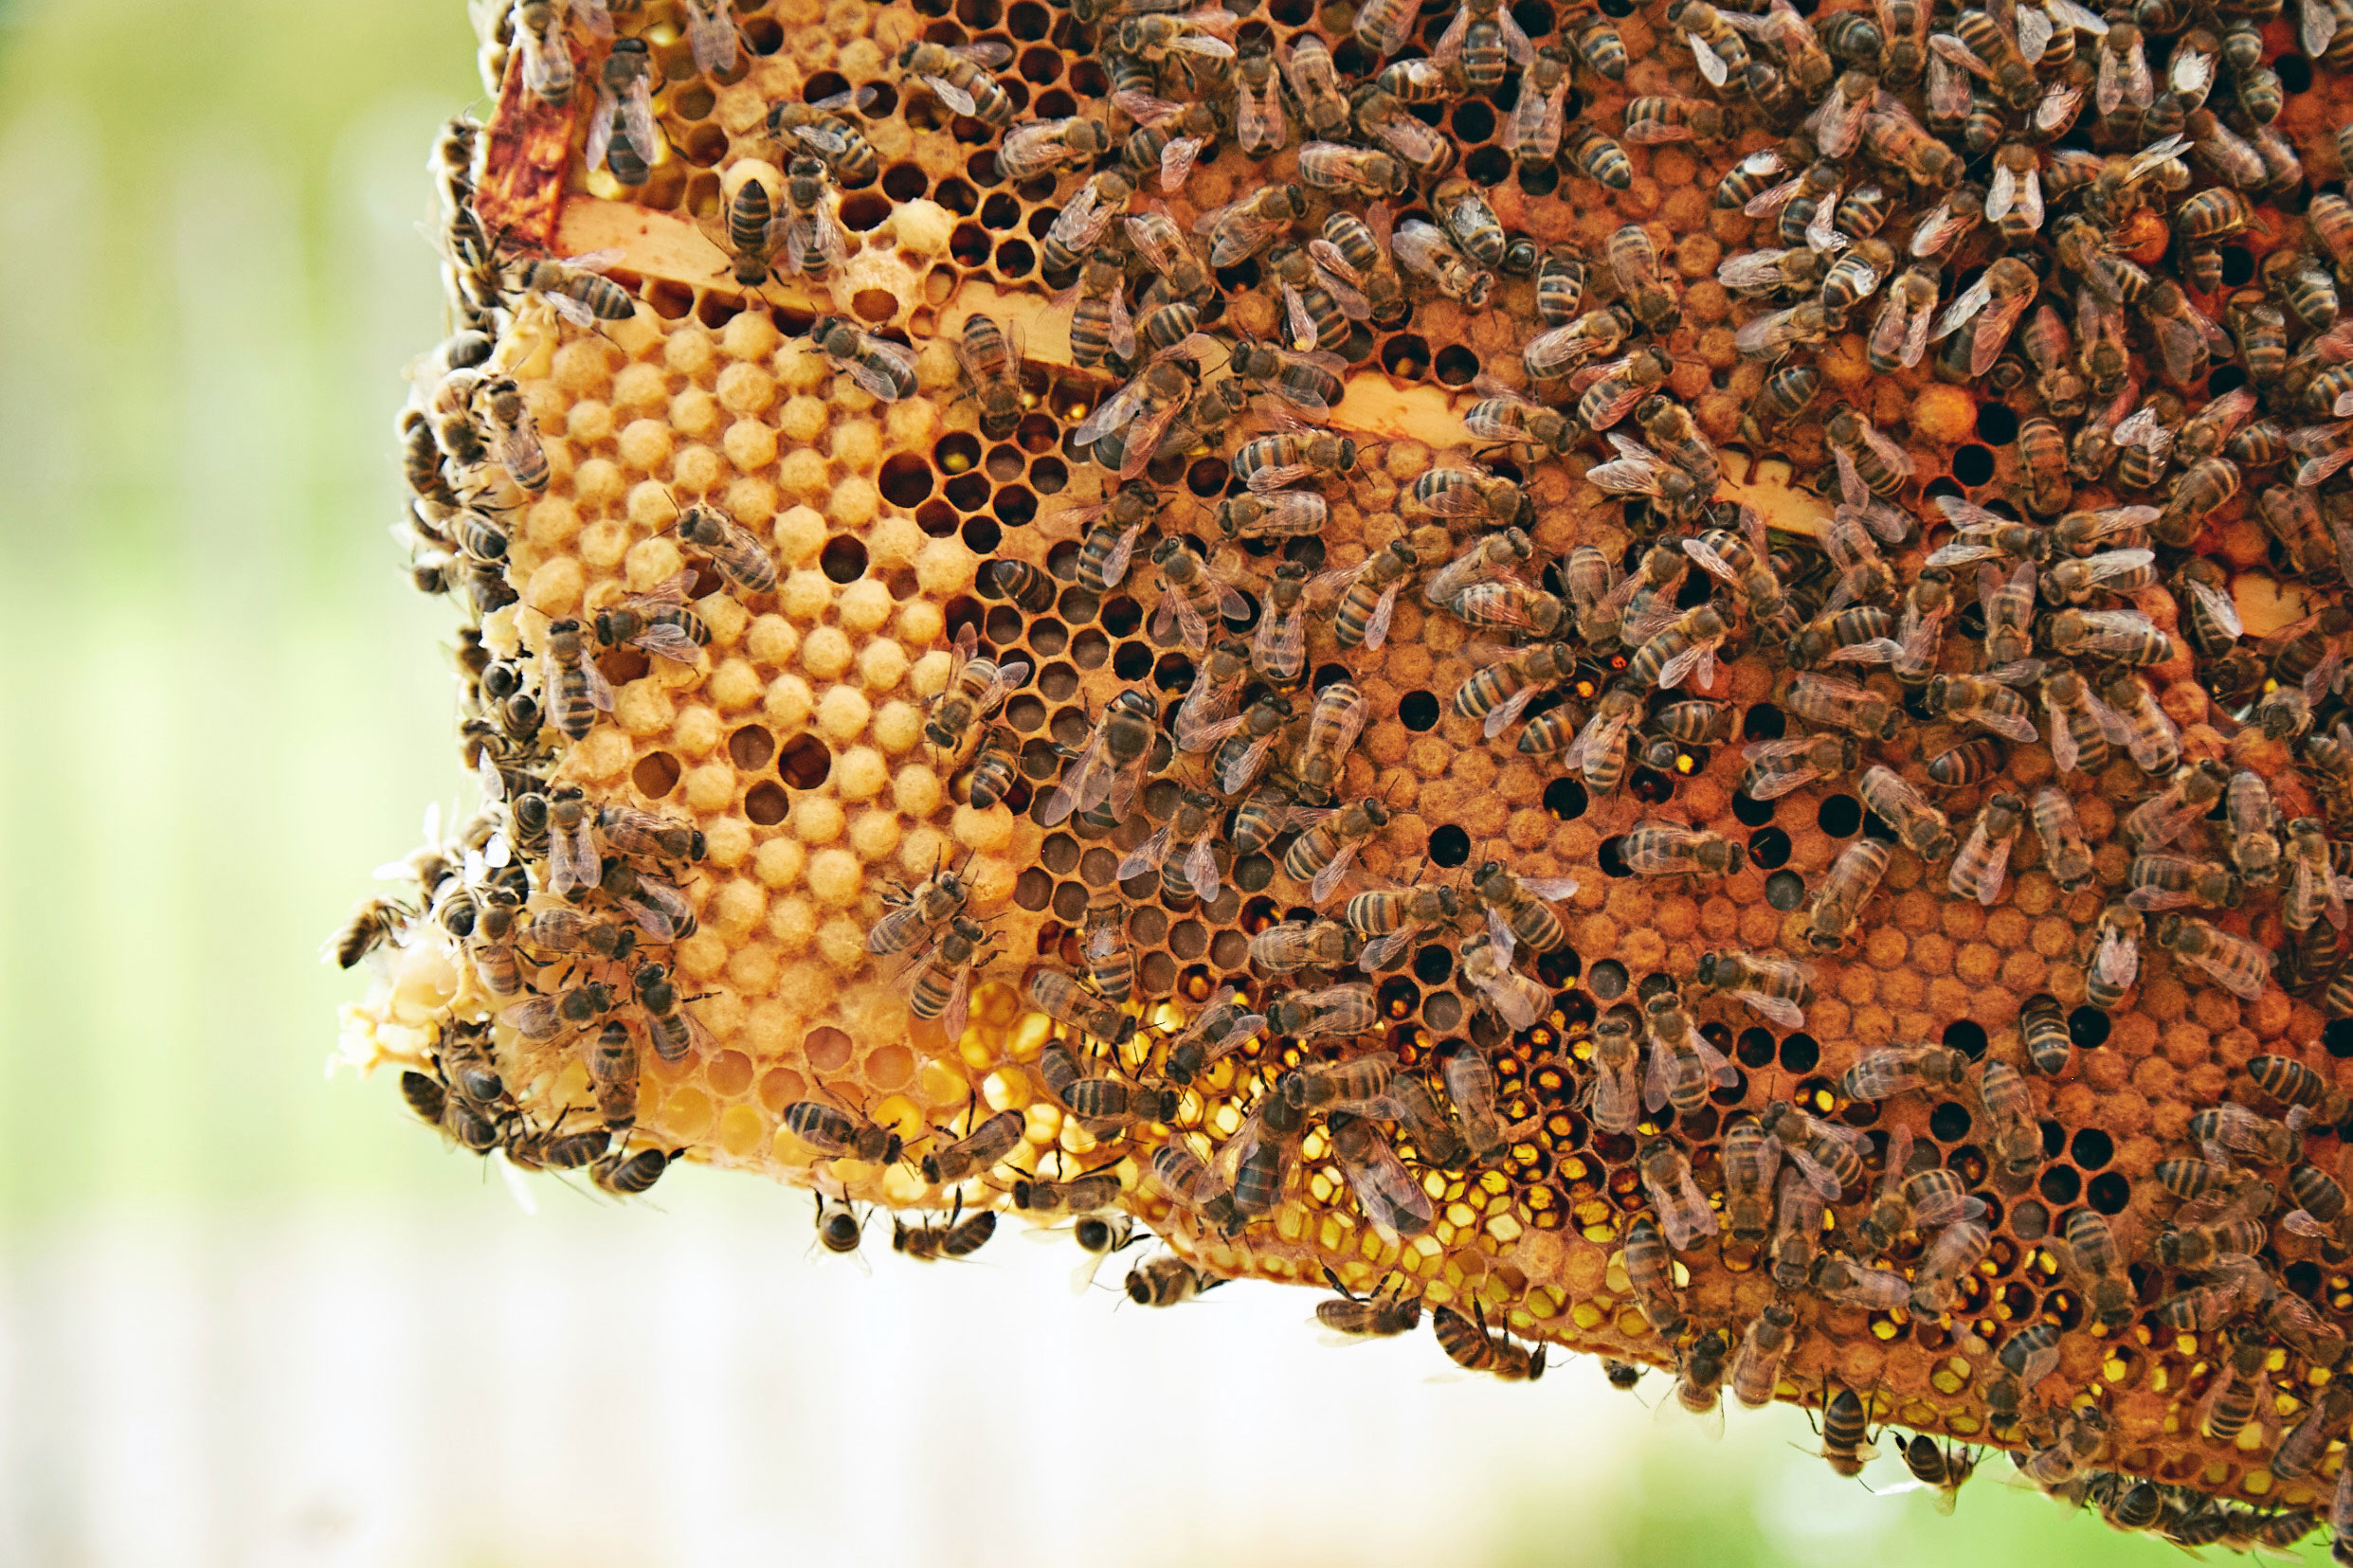 Bees-and-honeycomb.jpg